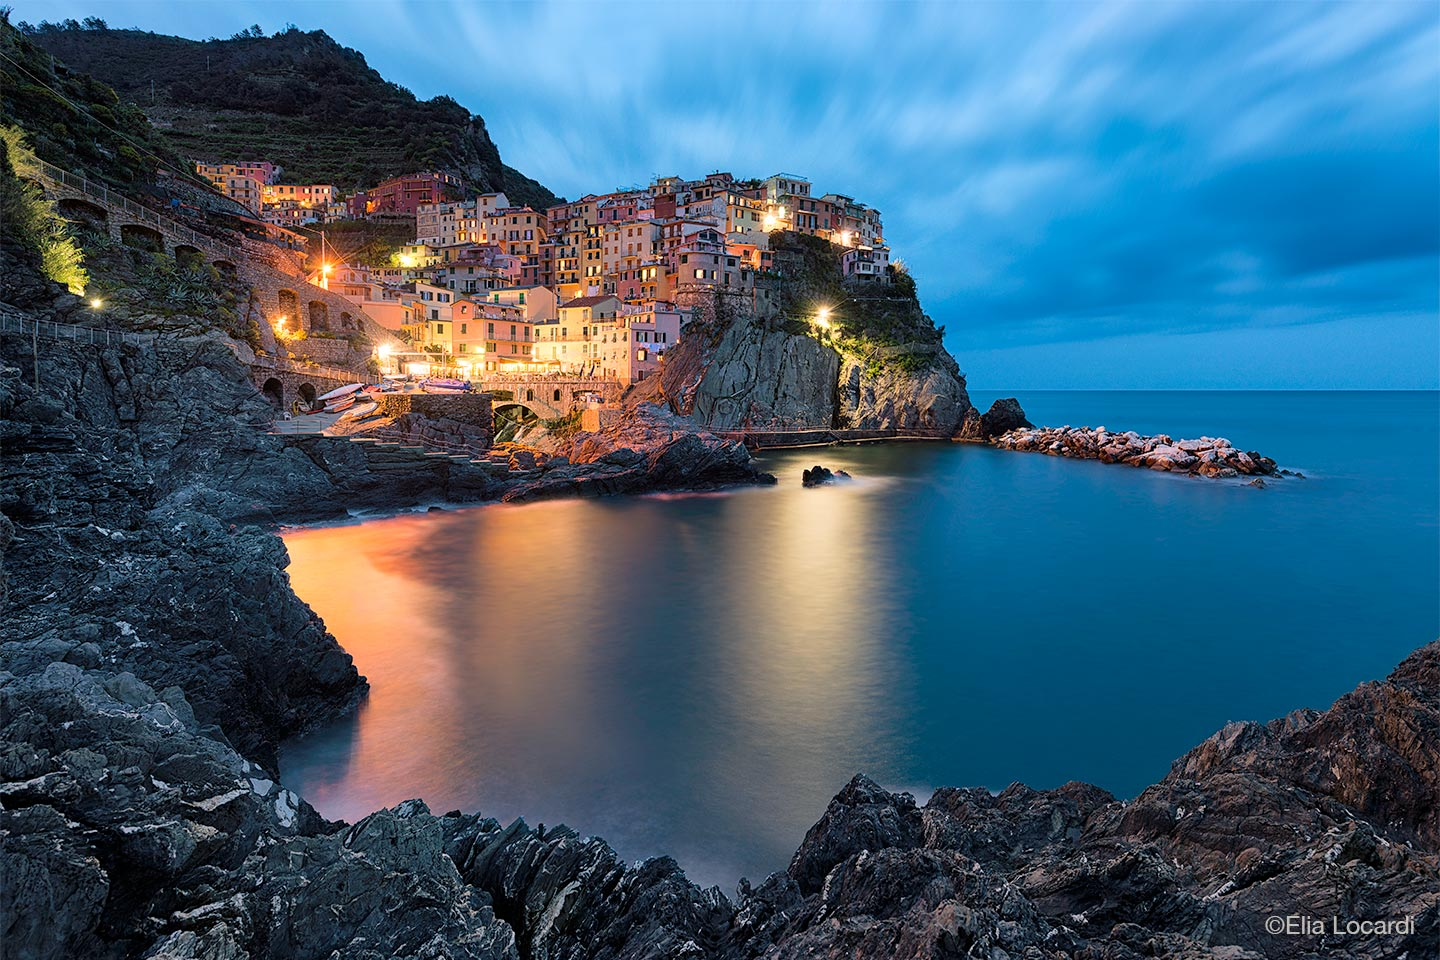 Italy Photo Tour - Cinque Terre - photo by Ken Kaminesky